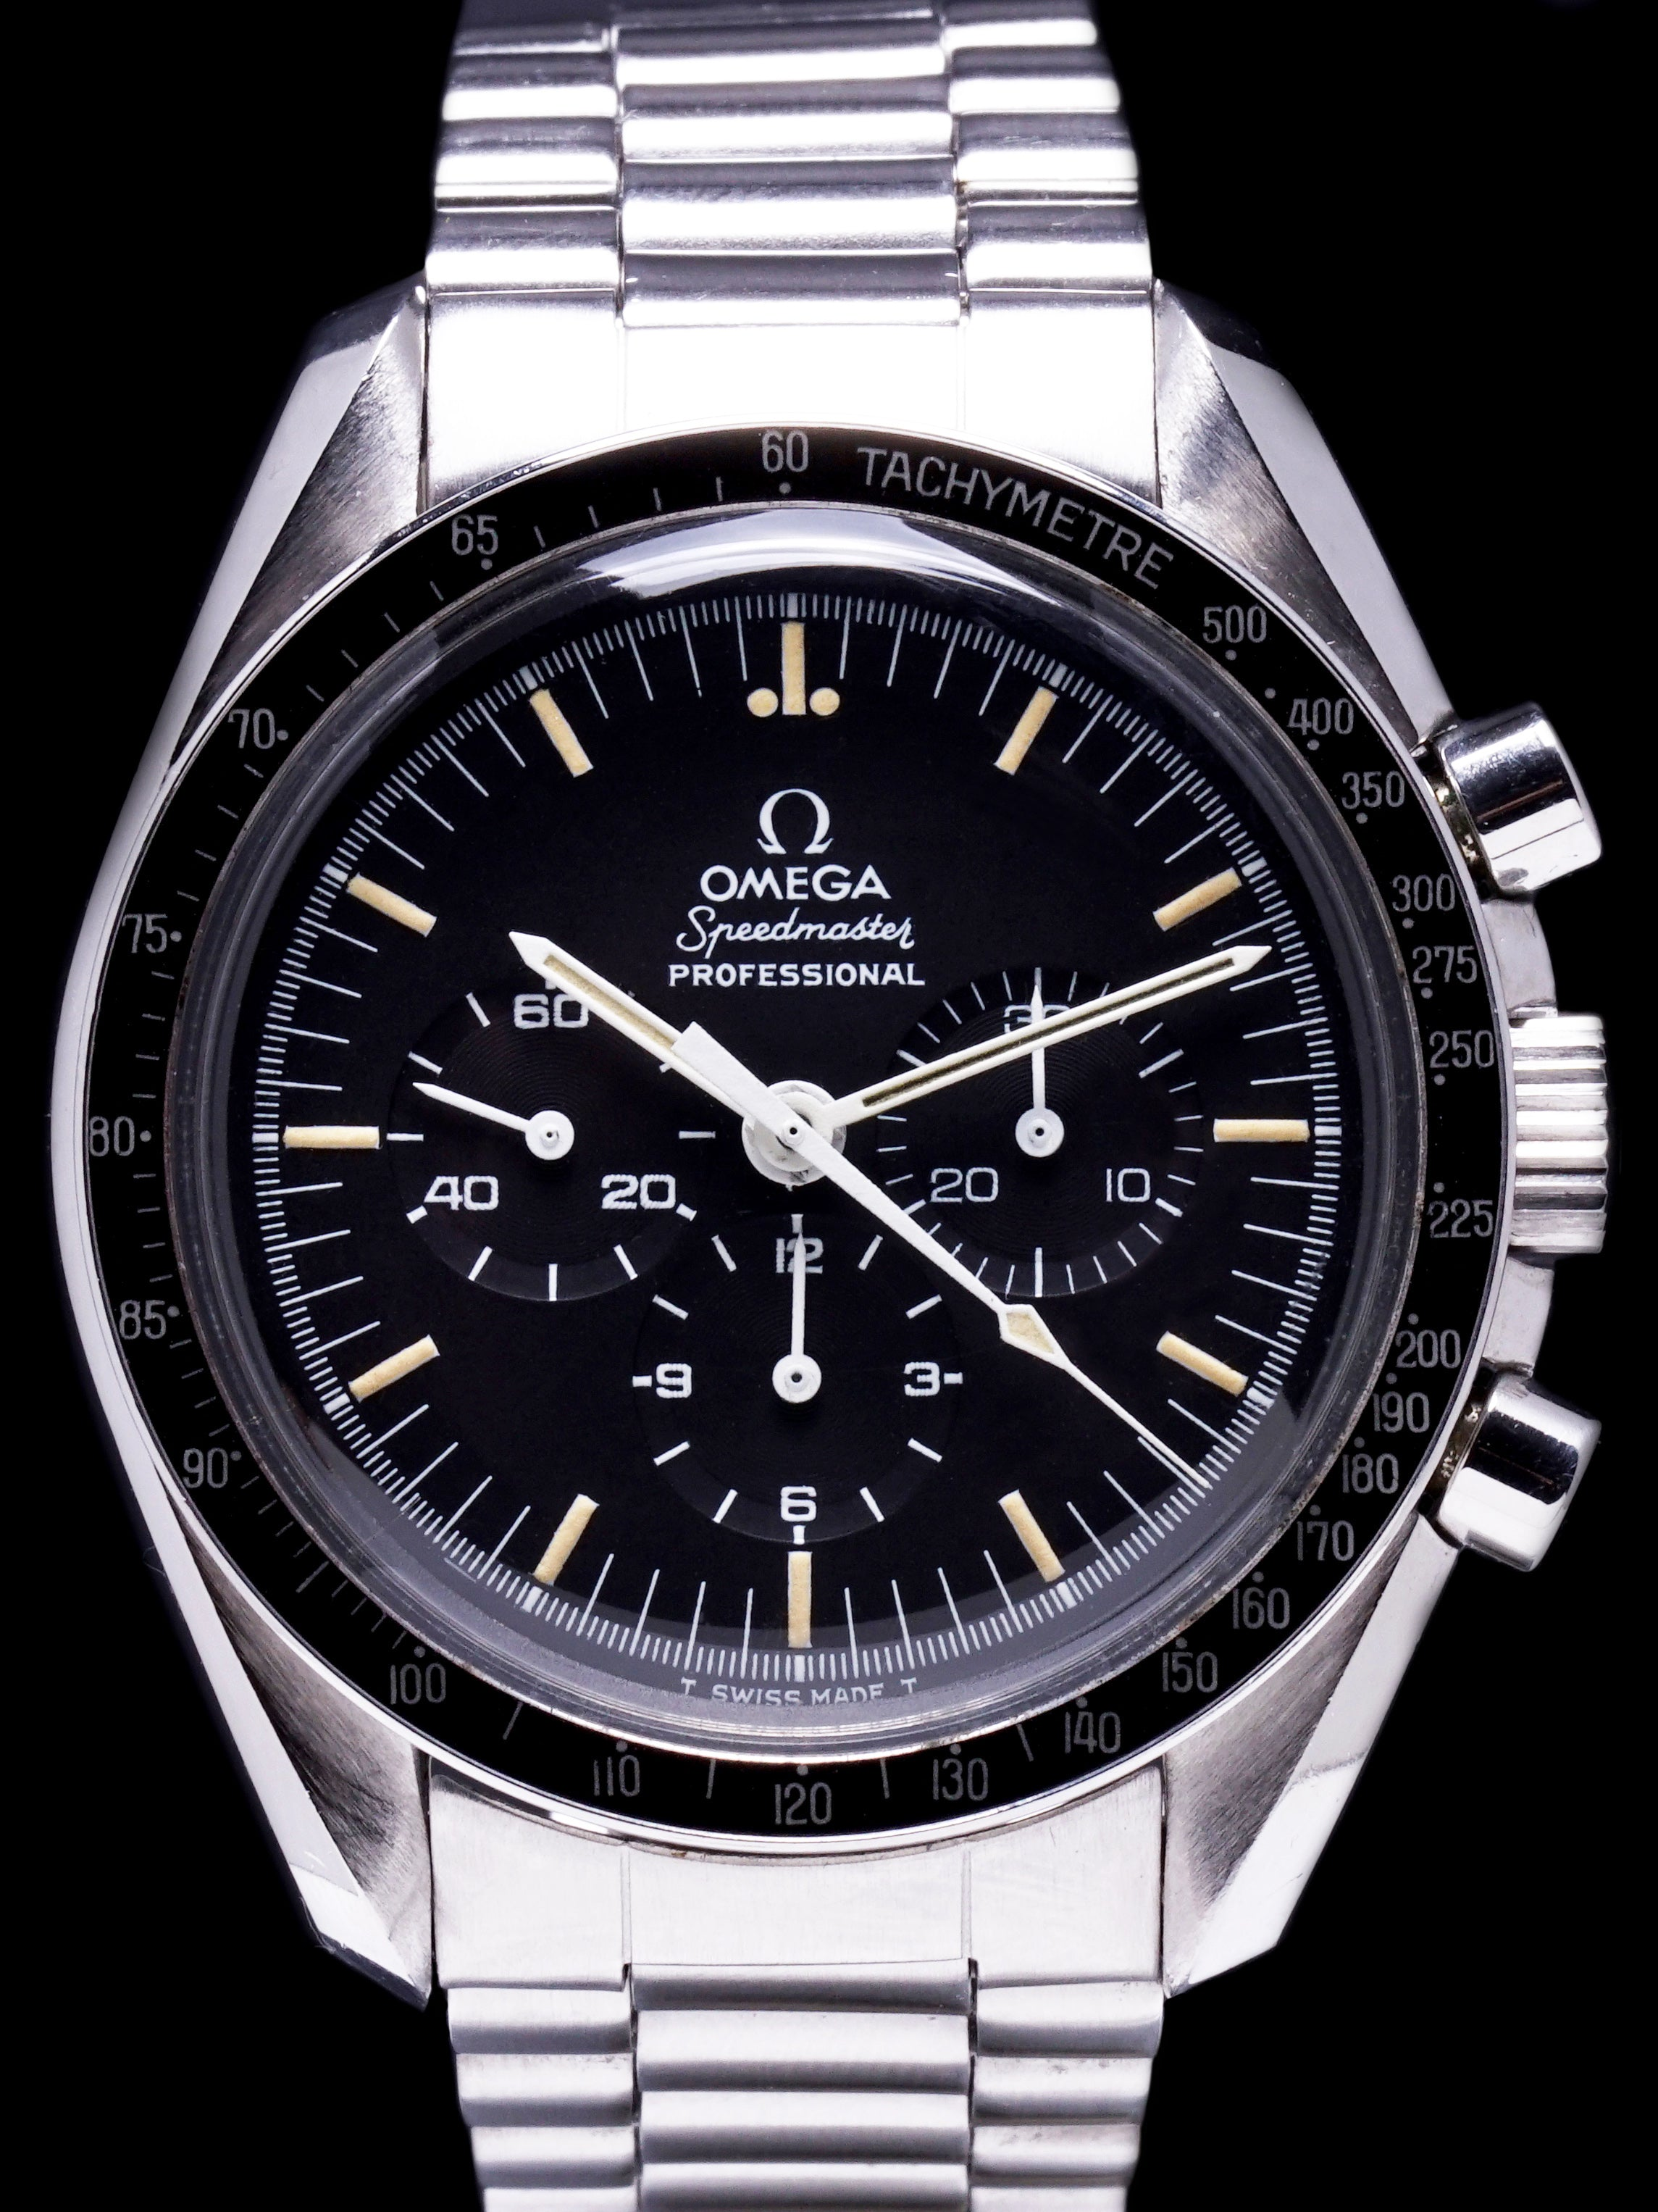 1976 OMEGA Speedmaster Professional (Ref. 145.022) W/ Box and Papers